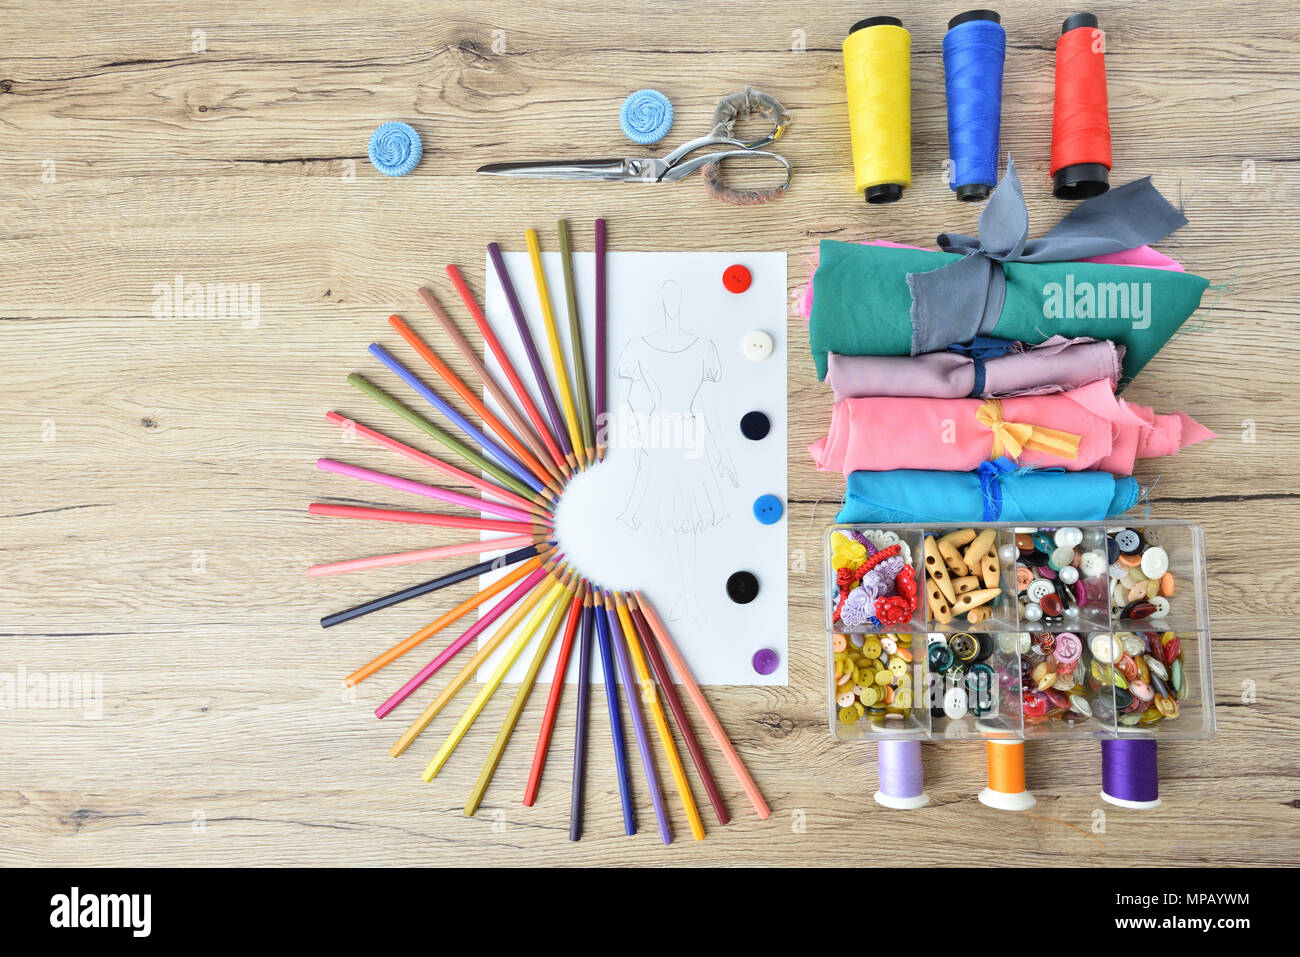 Fashion Design Tools For Sewing On Wooden Background Top View Stock Photo Alamy